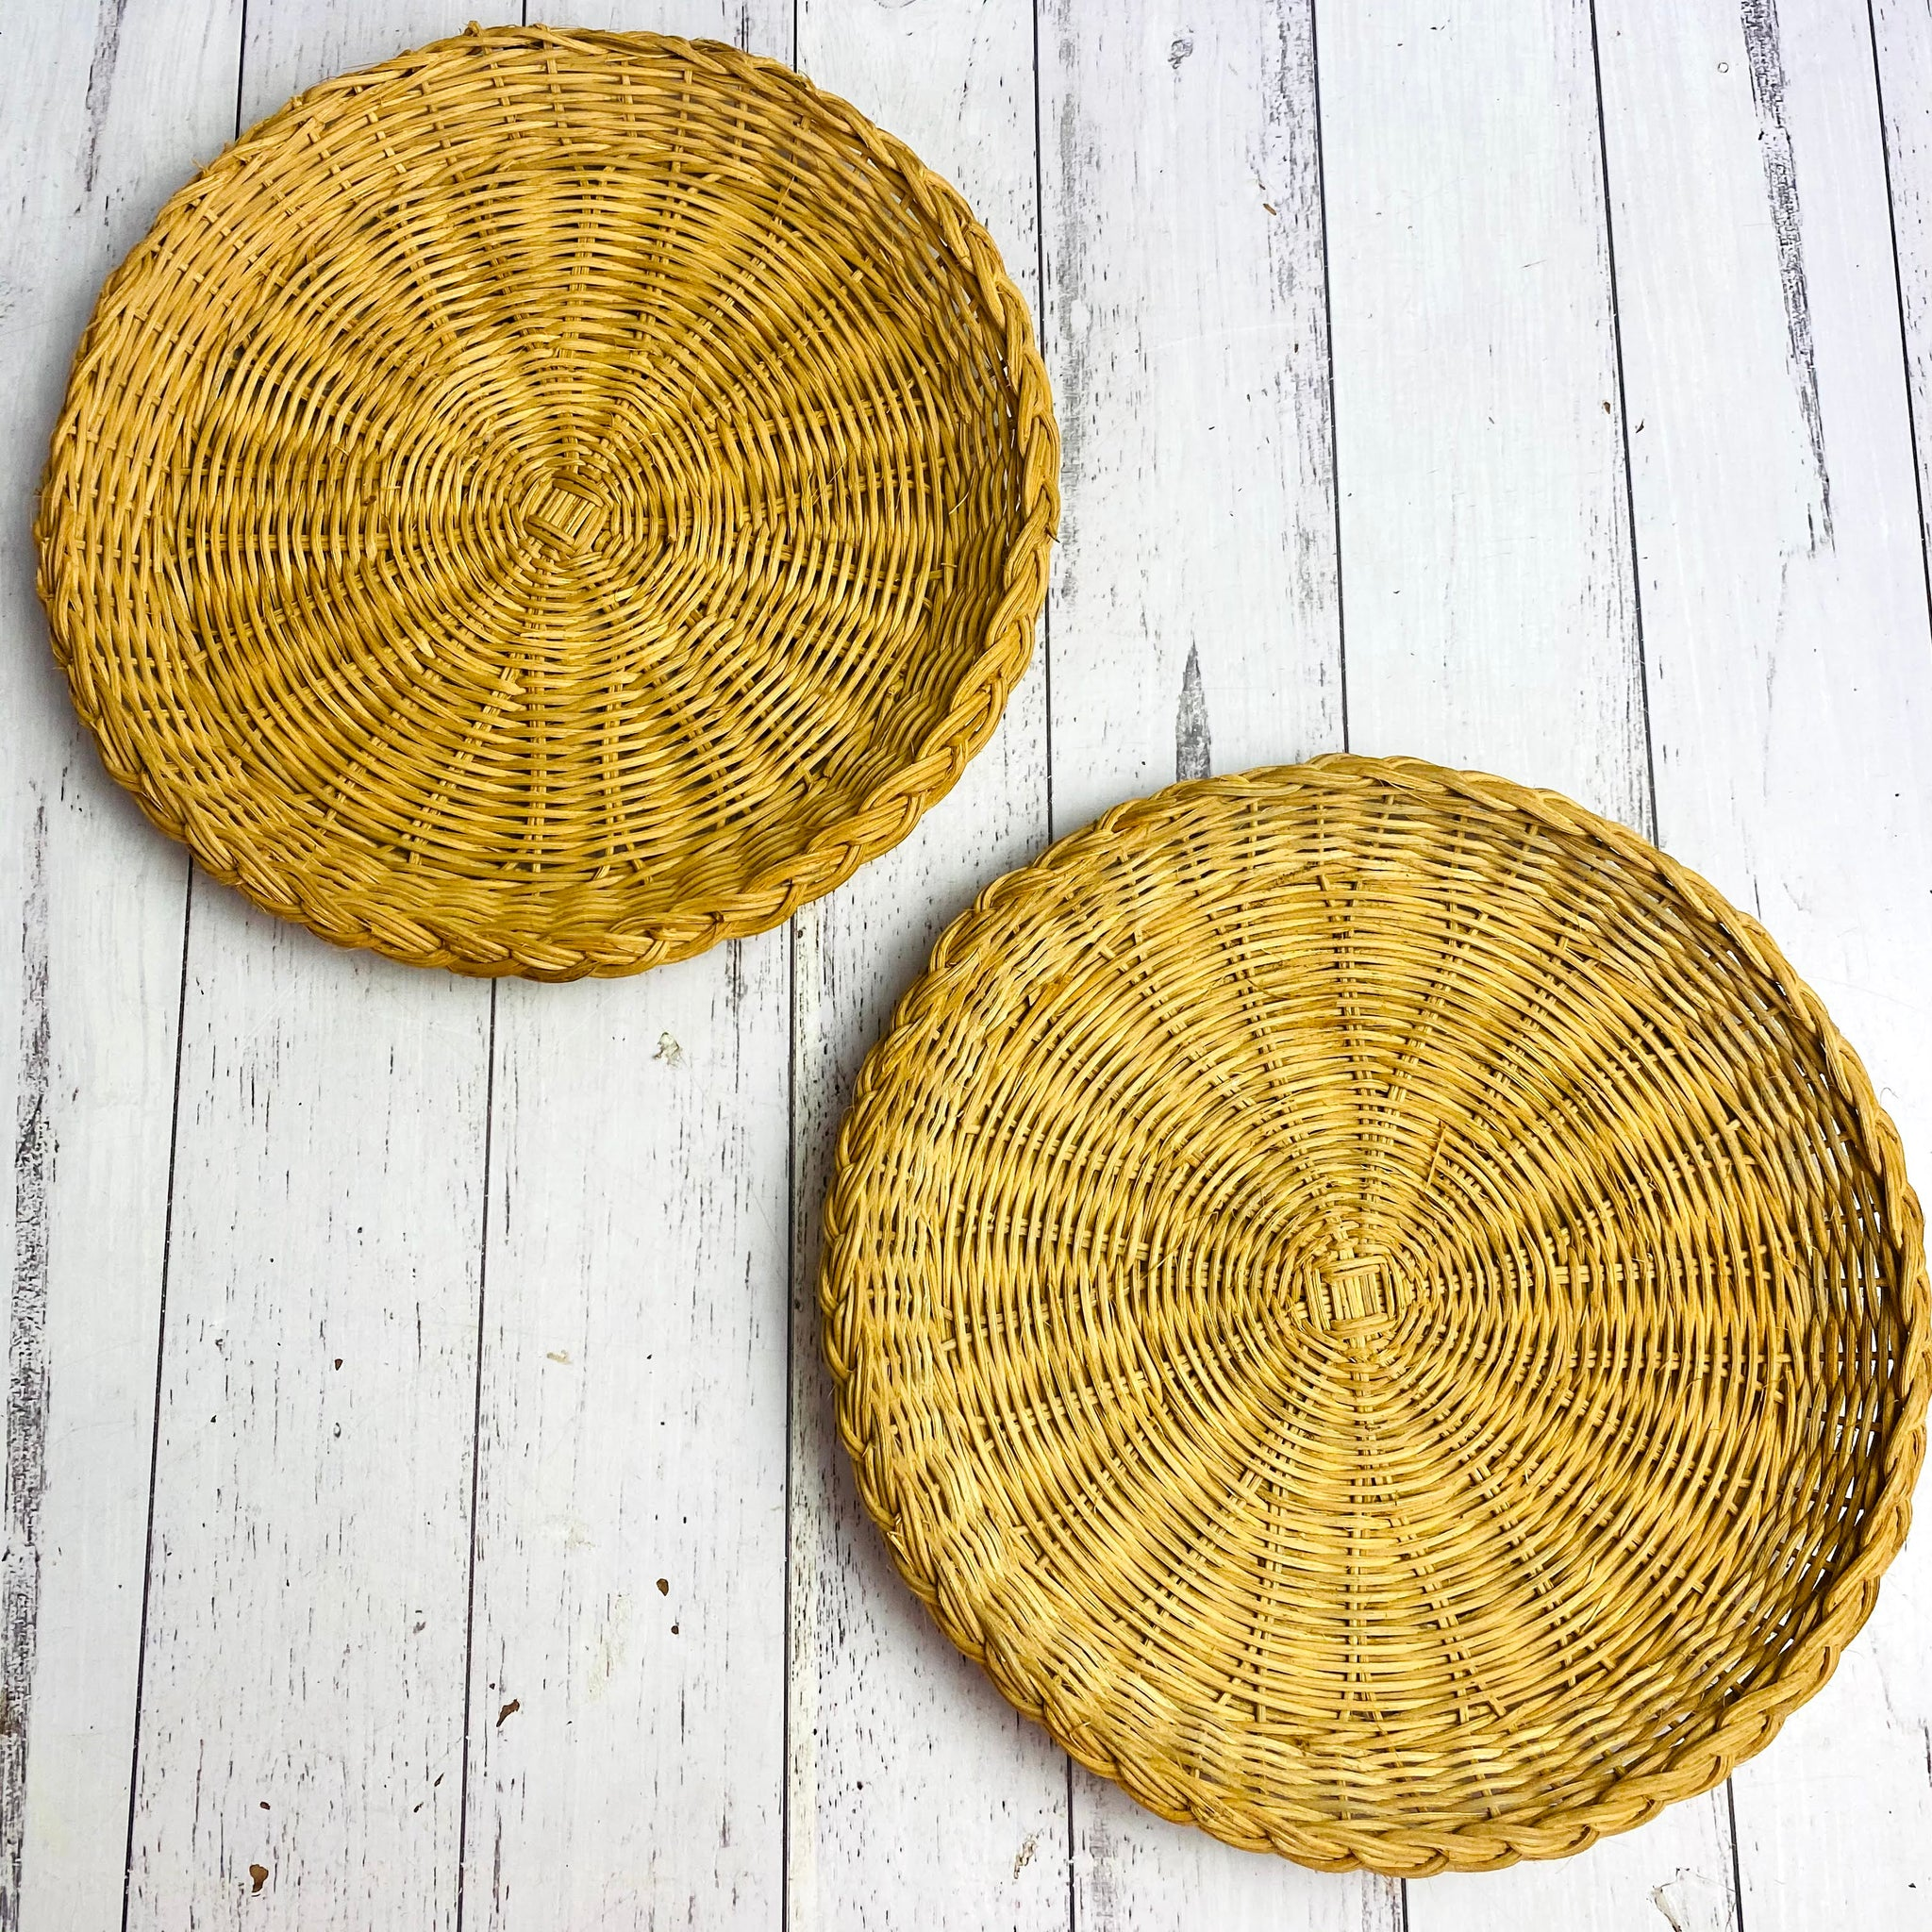 Set of 2 Cane Wicker Round Plates Wall Hanging Basket Set